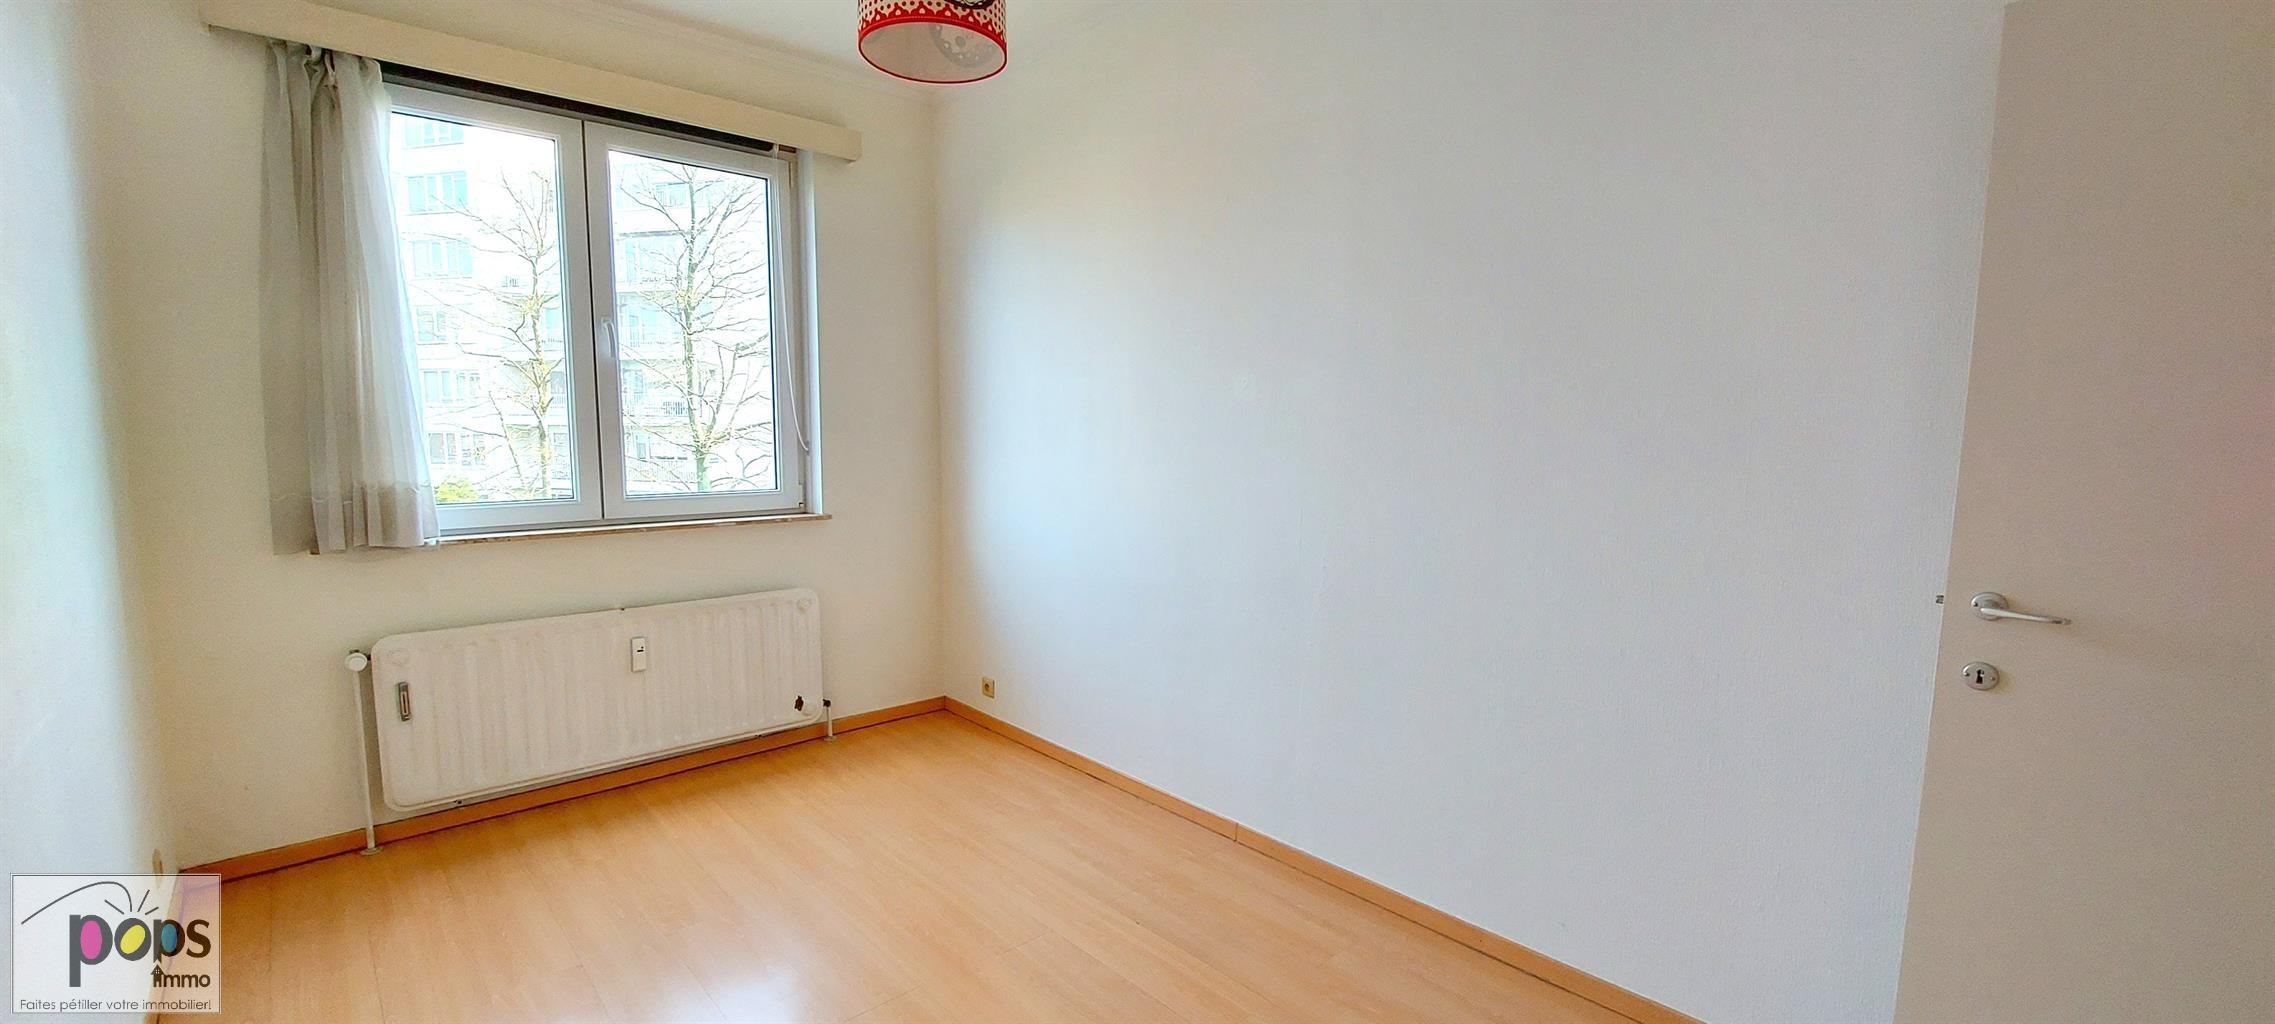 Appartement - Uccle - #4311863-16